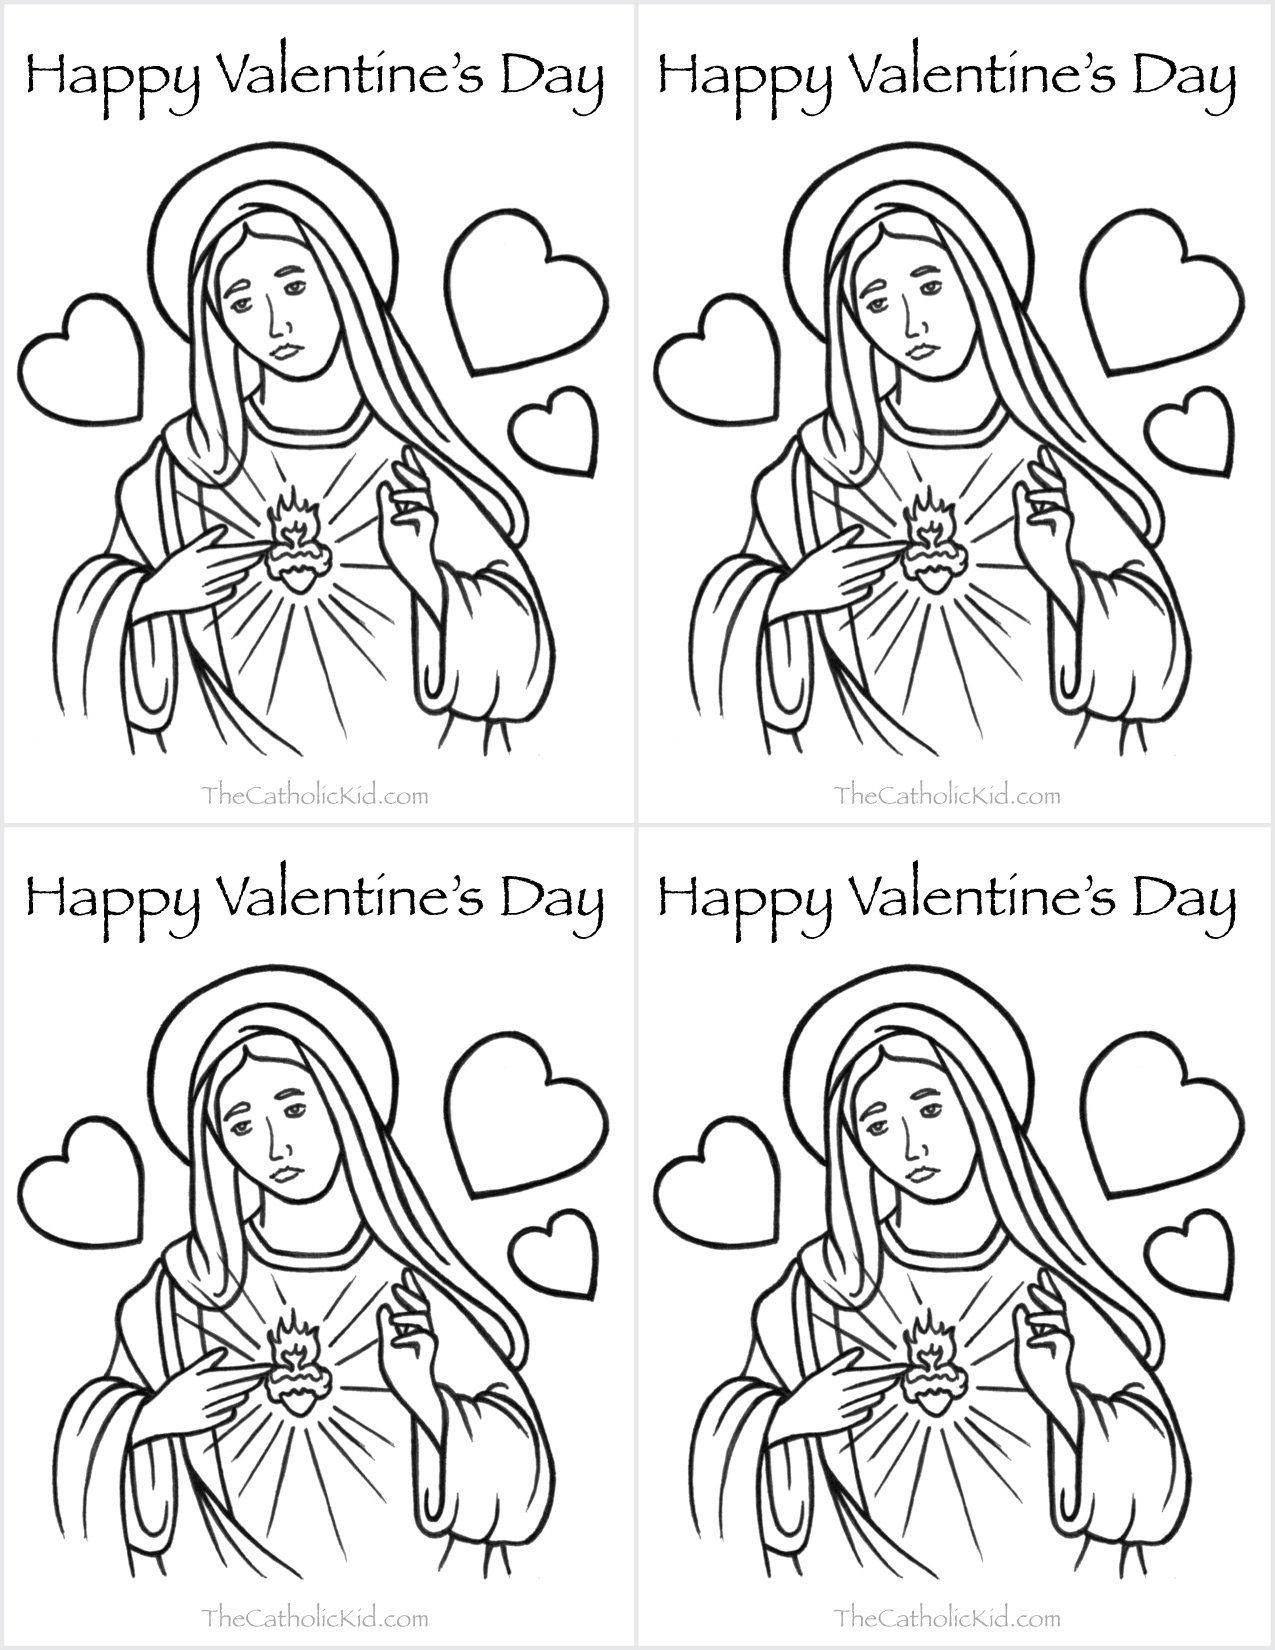 Catholic valentine cards